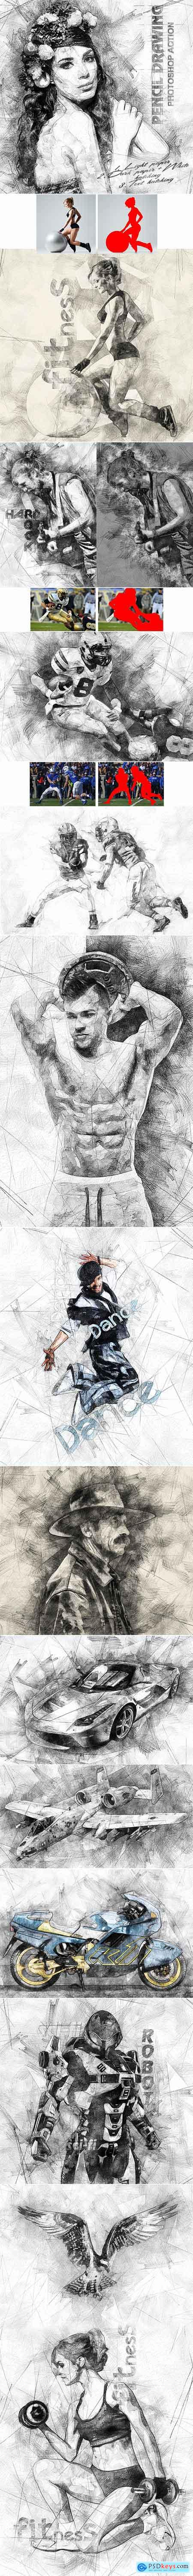 Pencil Drawing Photoshop Action 19737502